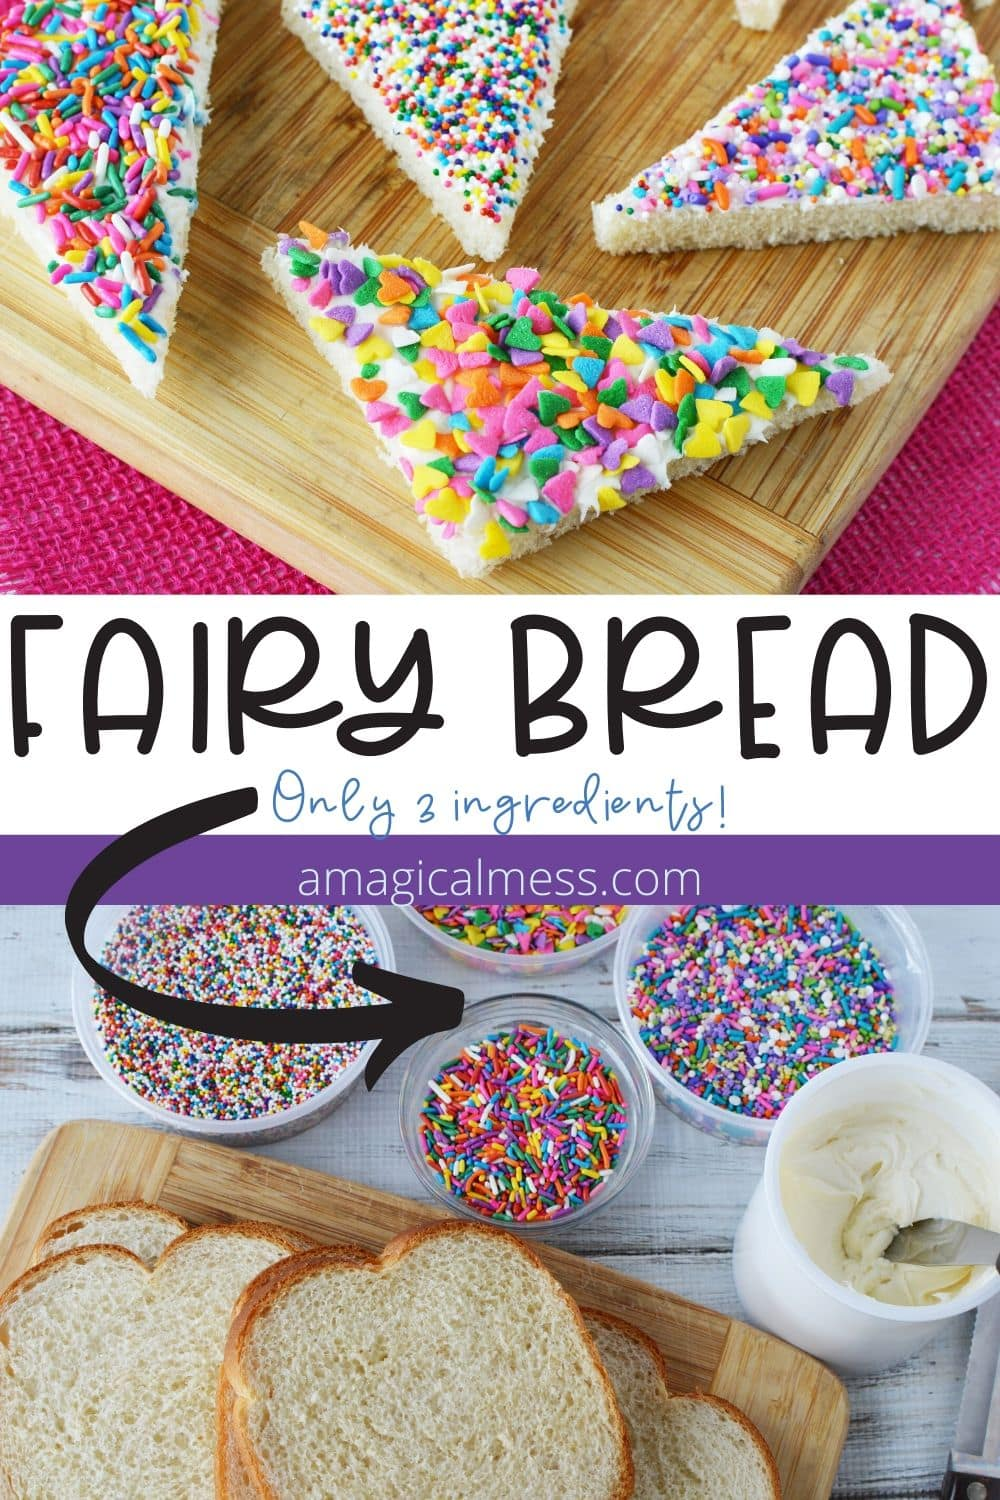 Fairy bread with sprinkles